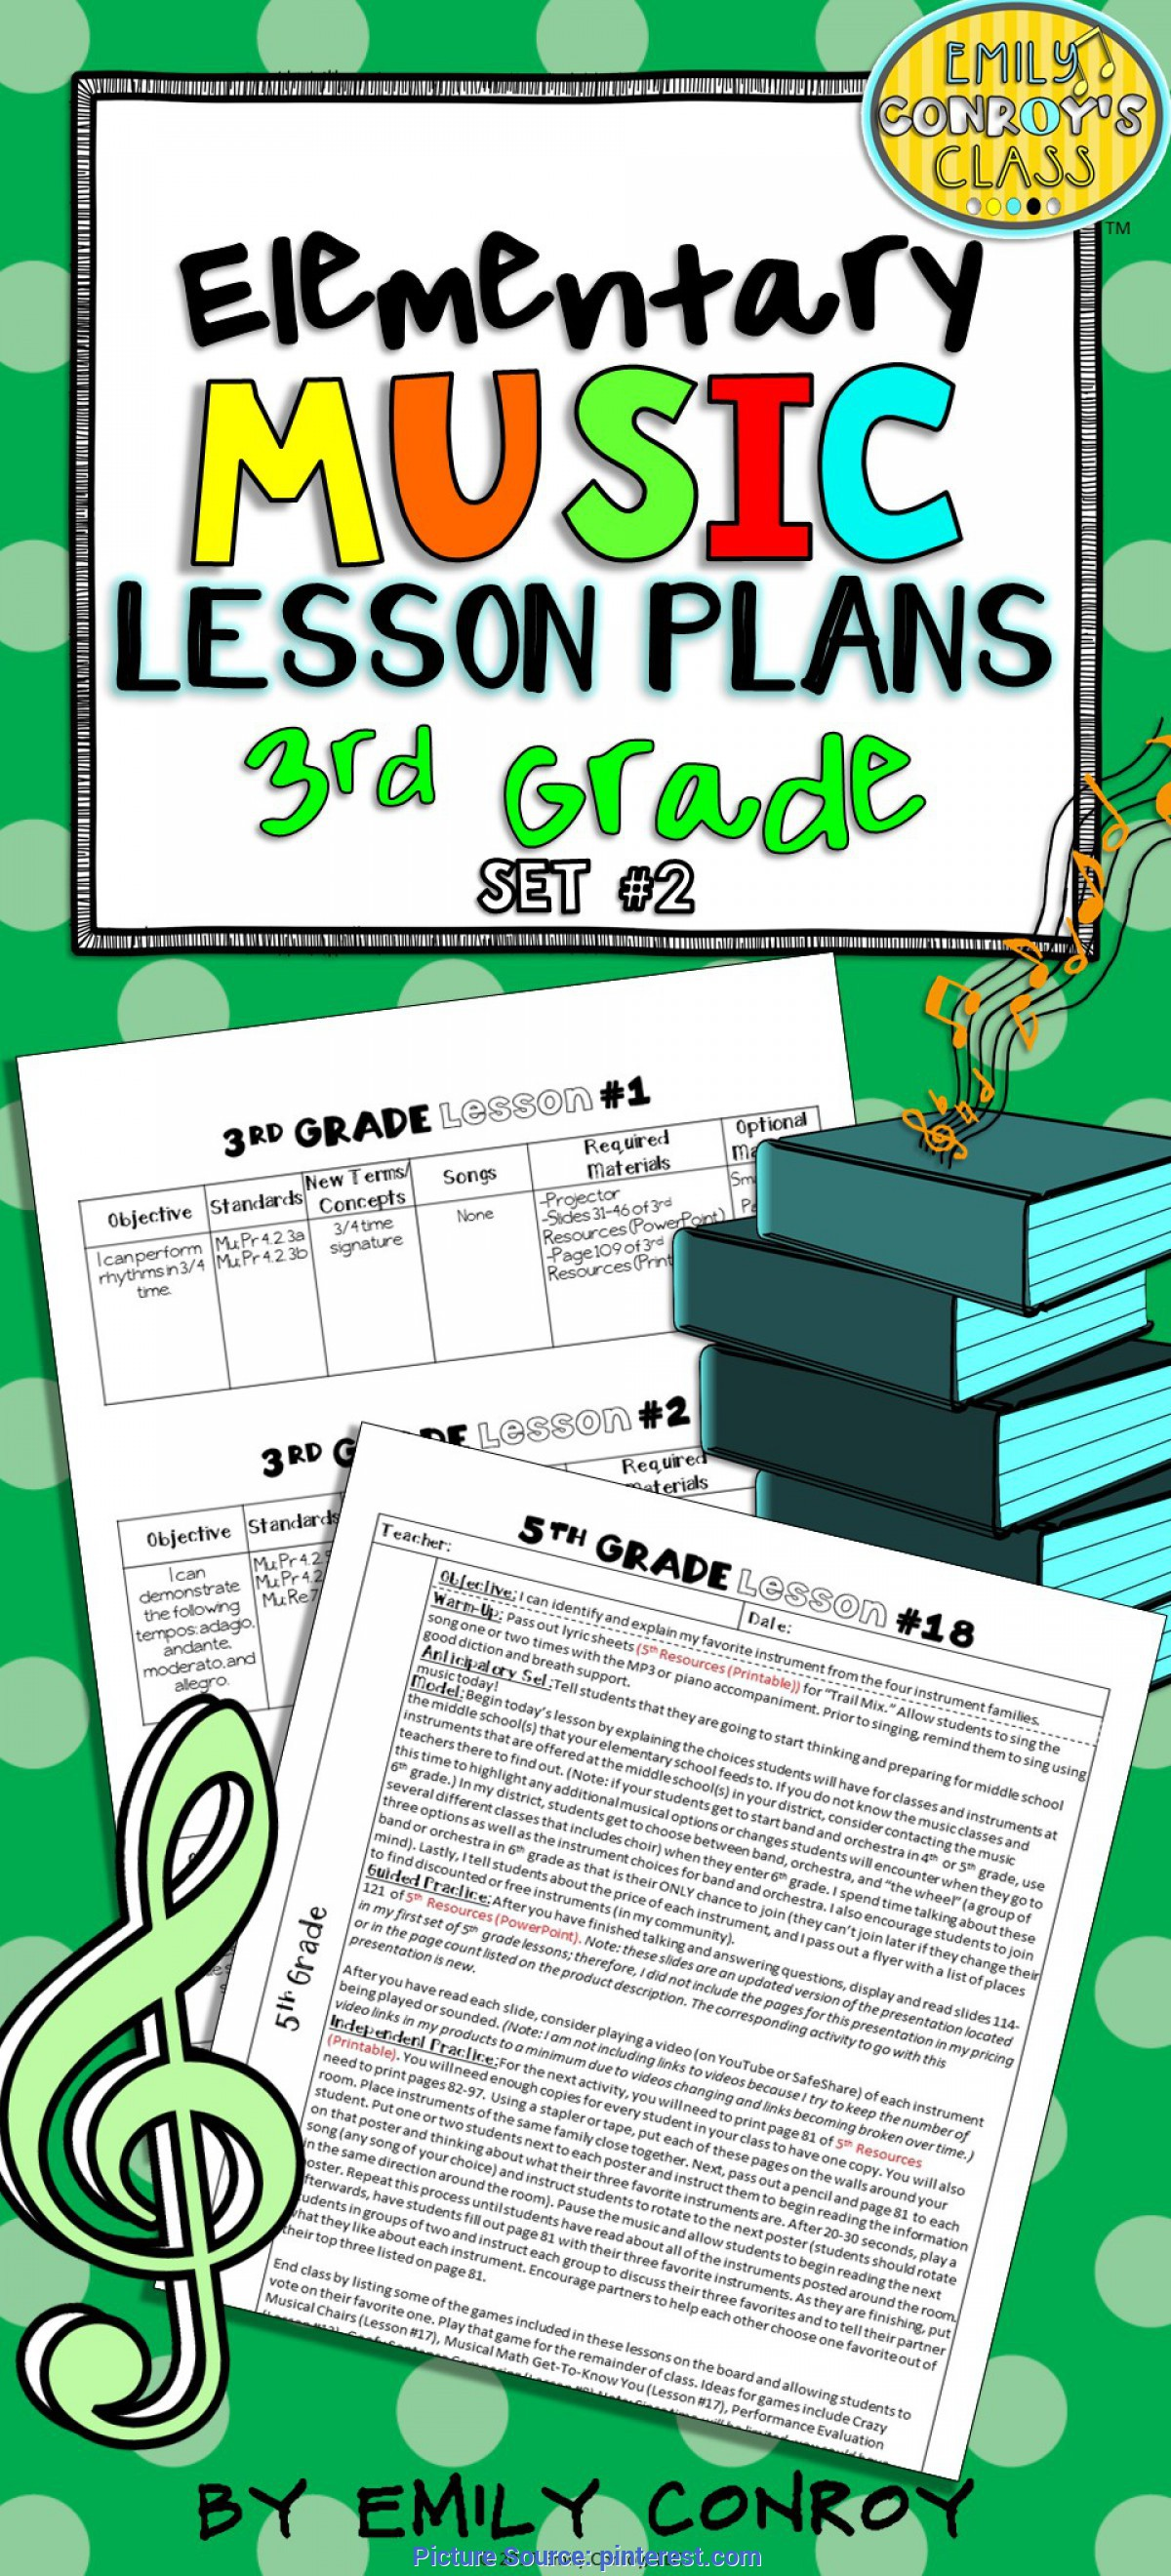 Simple 3Rd Grade Music Lesson Plans 3Rd Grade Music Lessons (Set #2) | Creative, Student An